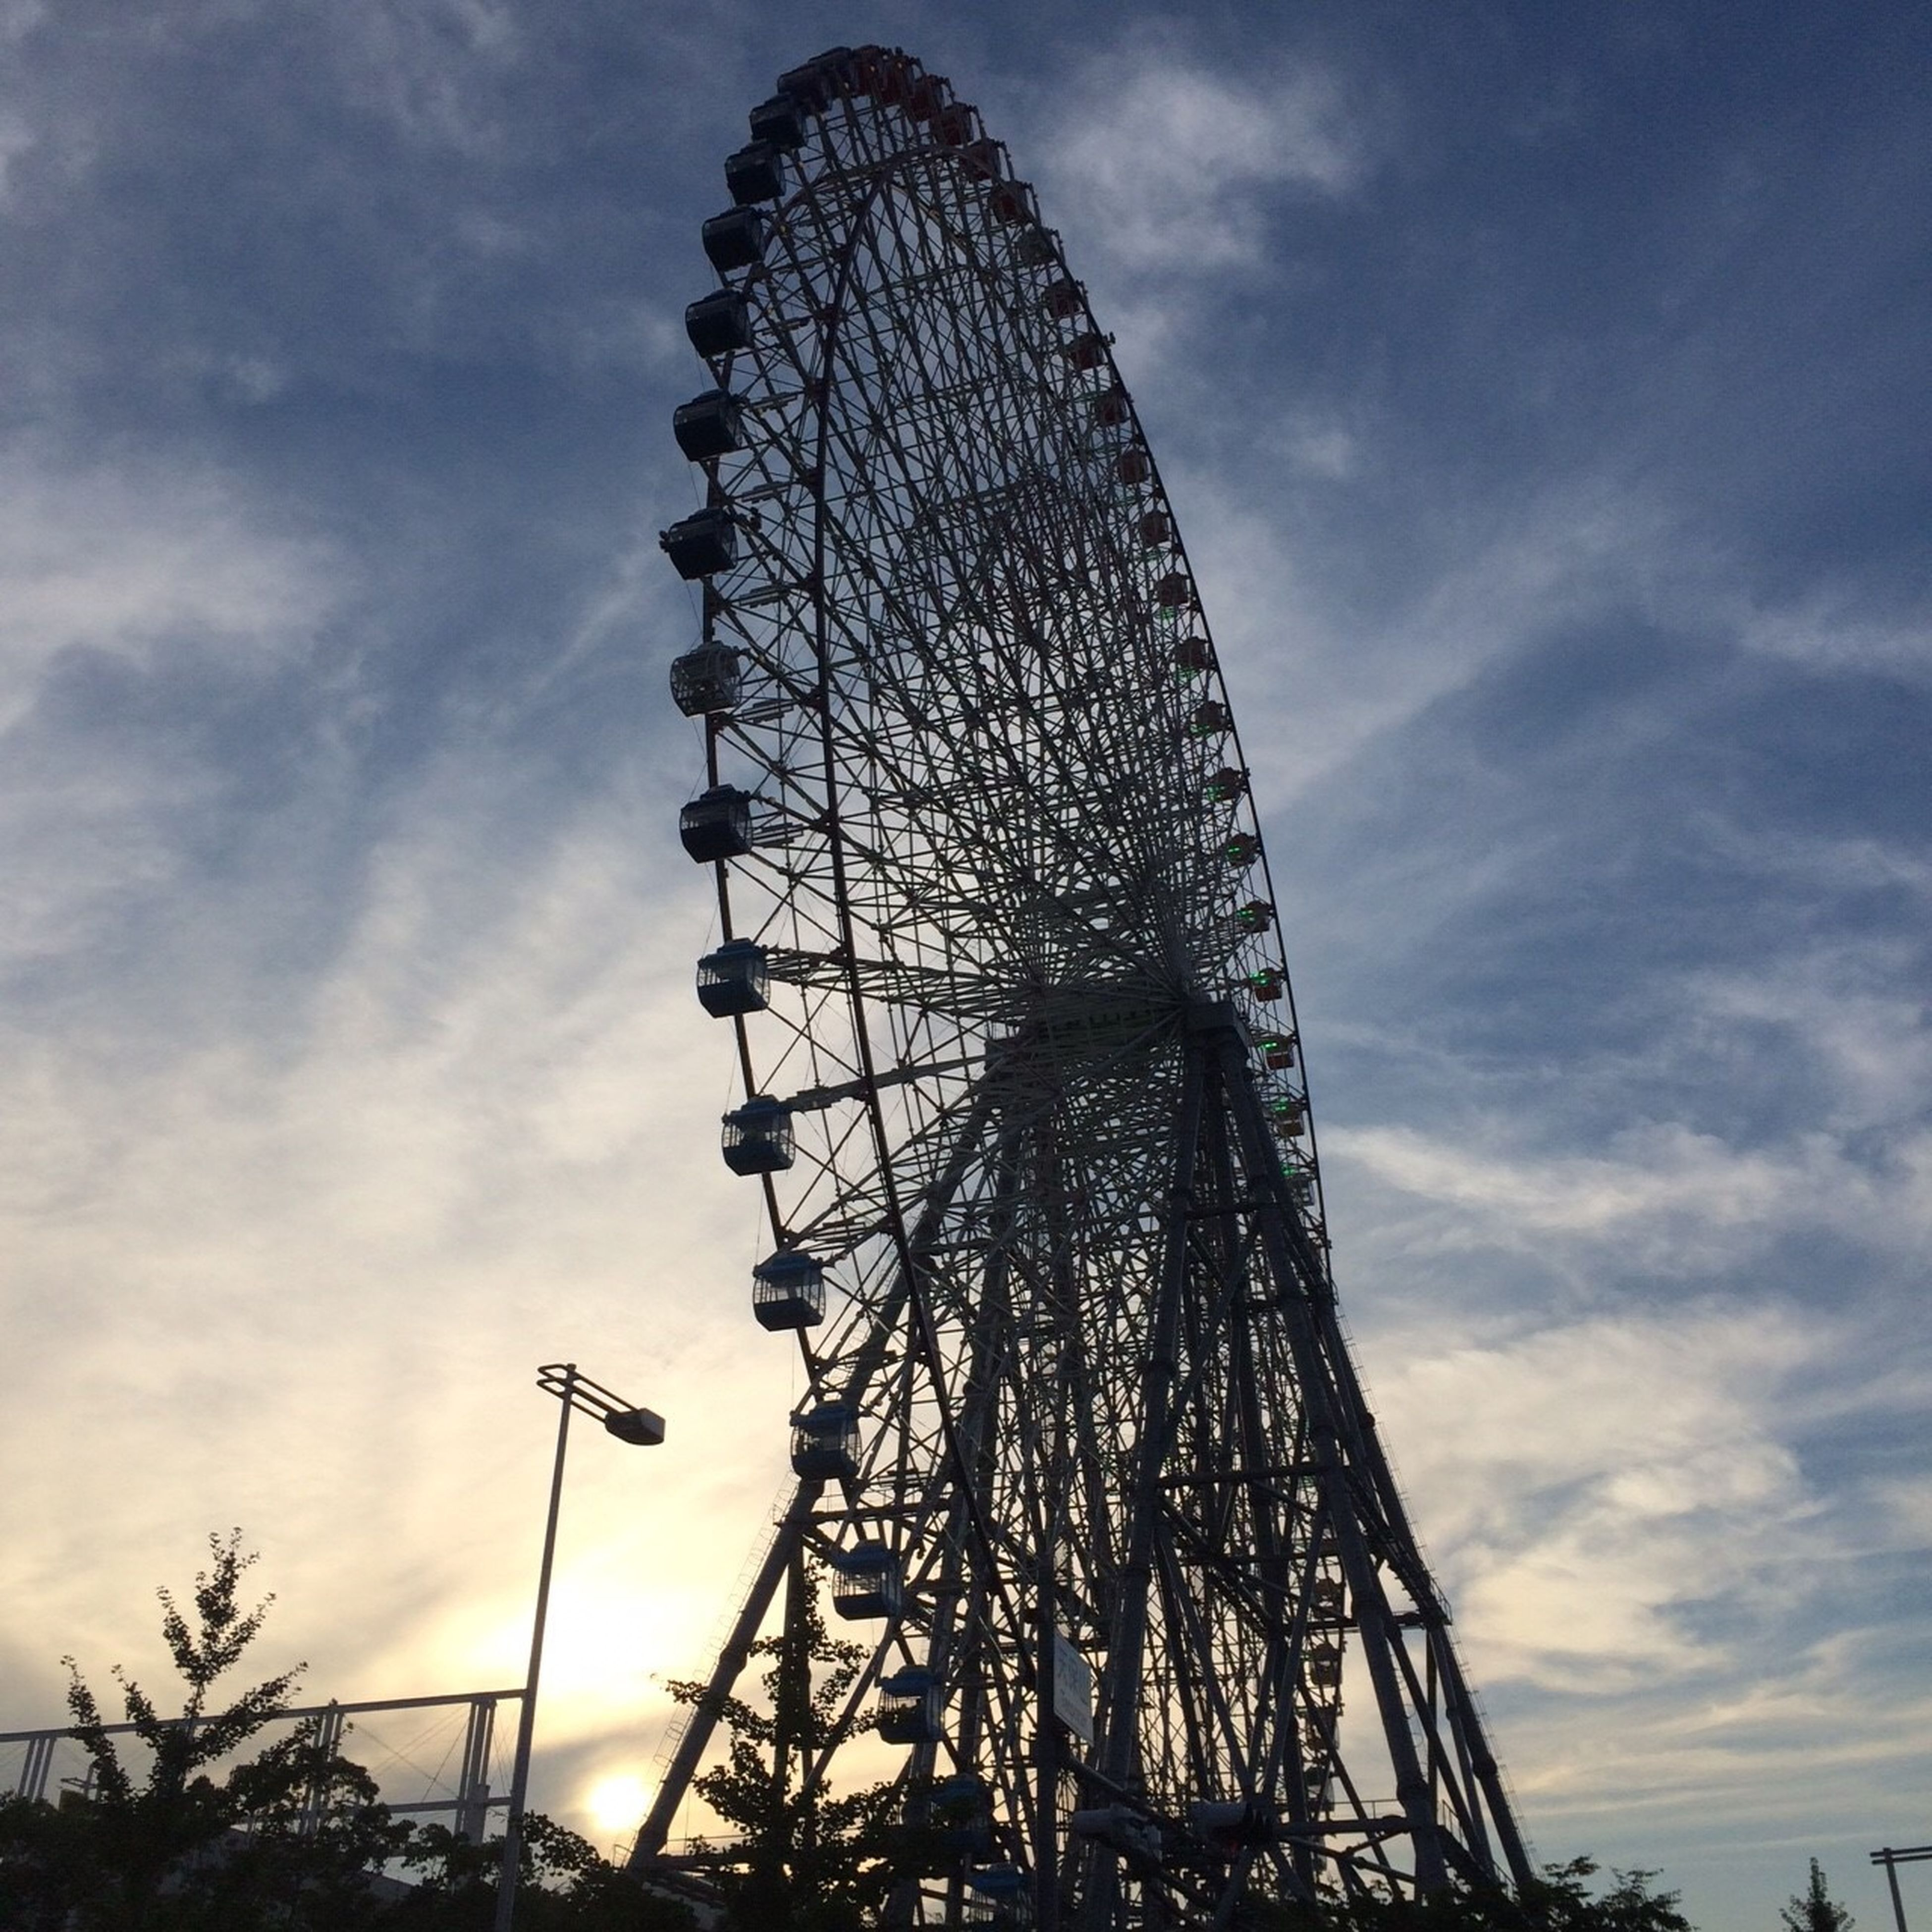 low angle view, sky, cloud - sky, silhouette, street light, cloudy, cloud, built structure, lighting equipment, tall - high, dusk, illuminated, architecture, outdoors, arts culture and entertainment, no people, ferris wheel, amusement park, amusement park ride, tree